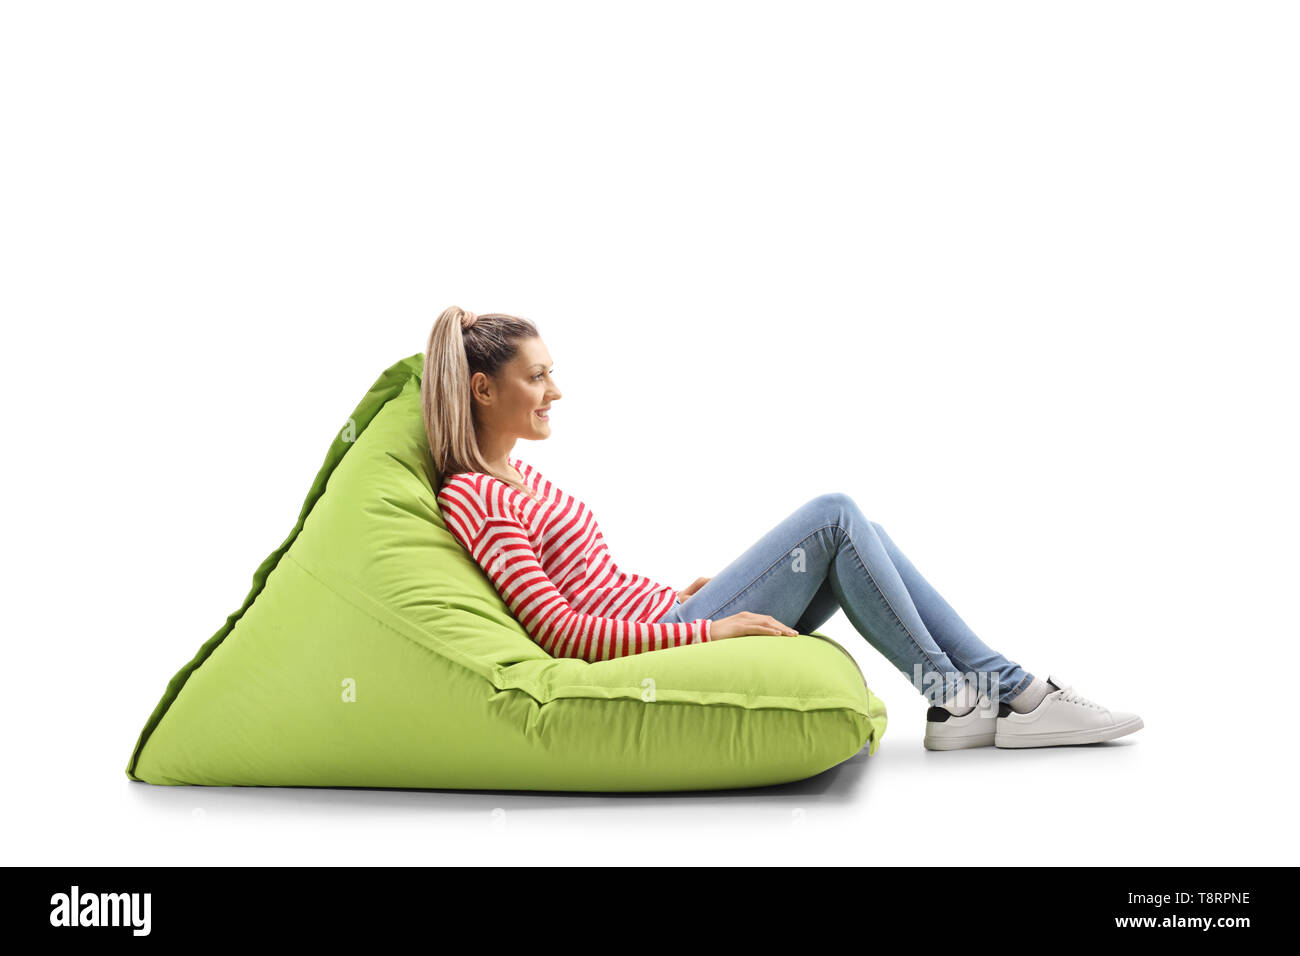 Full length profile shot of a young blond casual woman sitting on a green bean bag isolated on white background - Stock Image